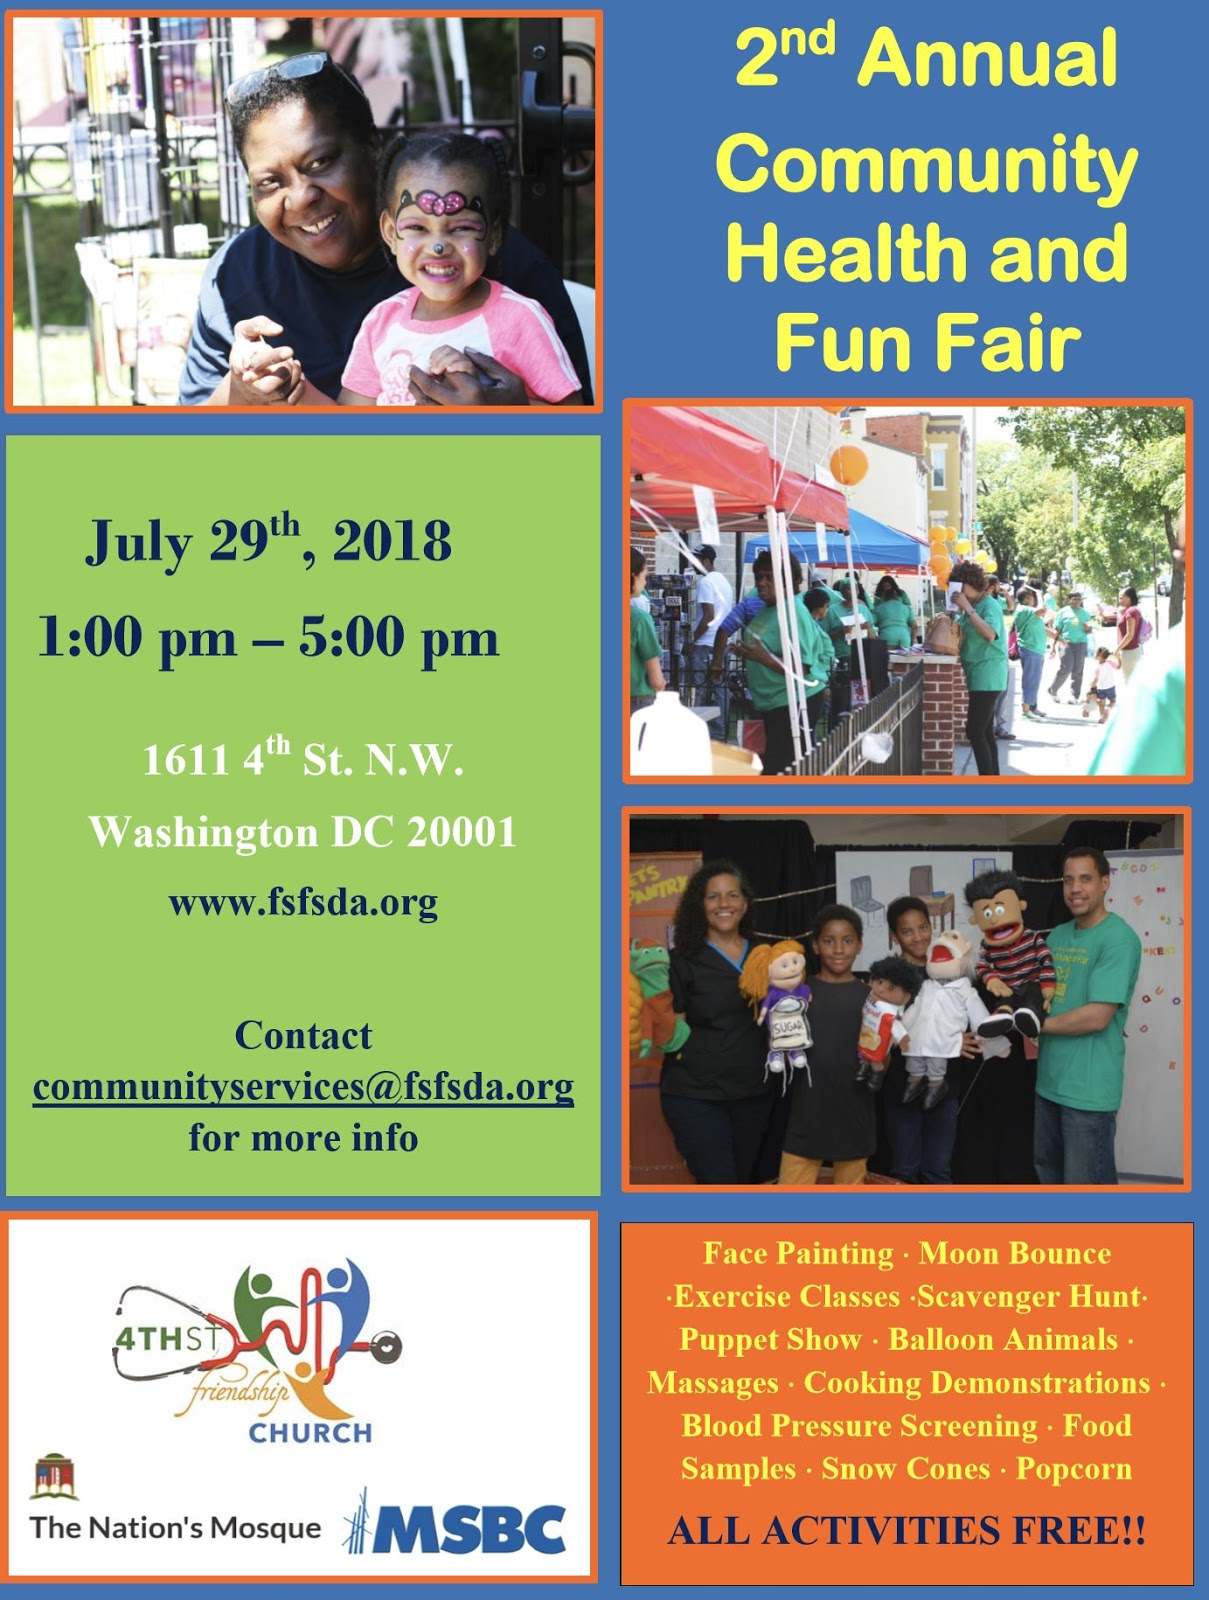 bloomingdale: add the 2nd Annual Community Health and Fun